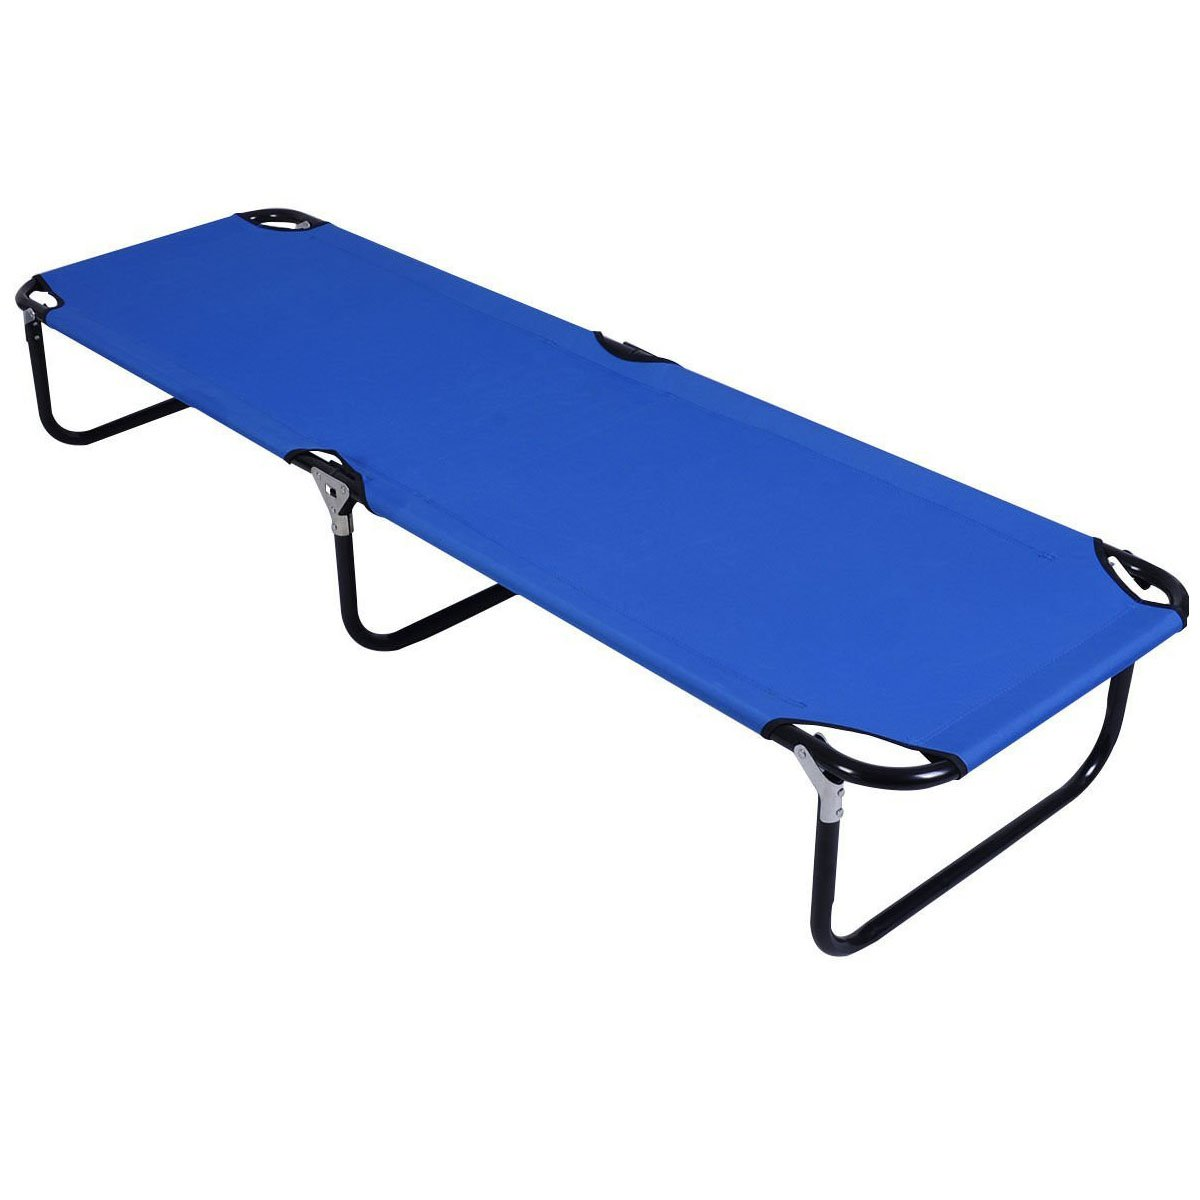 Giantex Blue Folding Camping Bed Hiking Outdoor Portable Army Military Folding Camping Bed